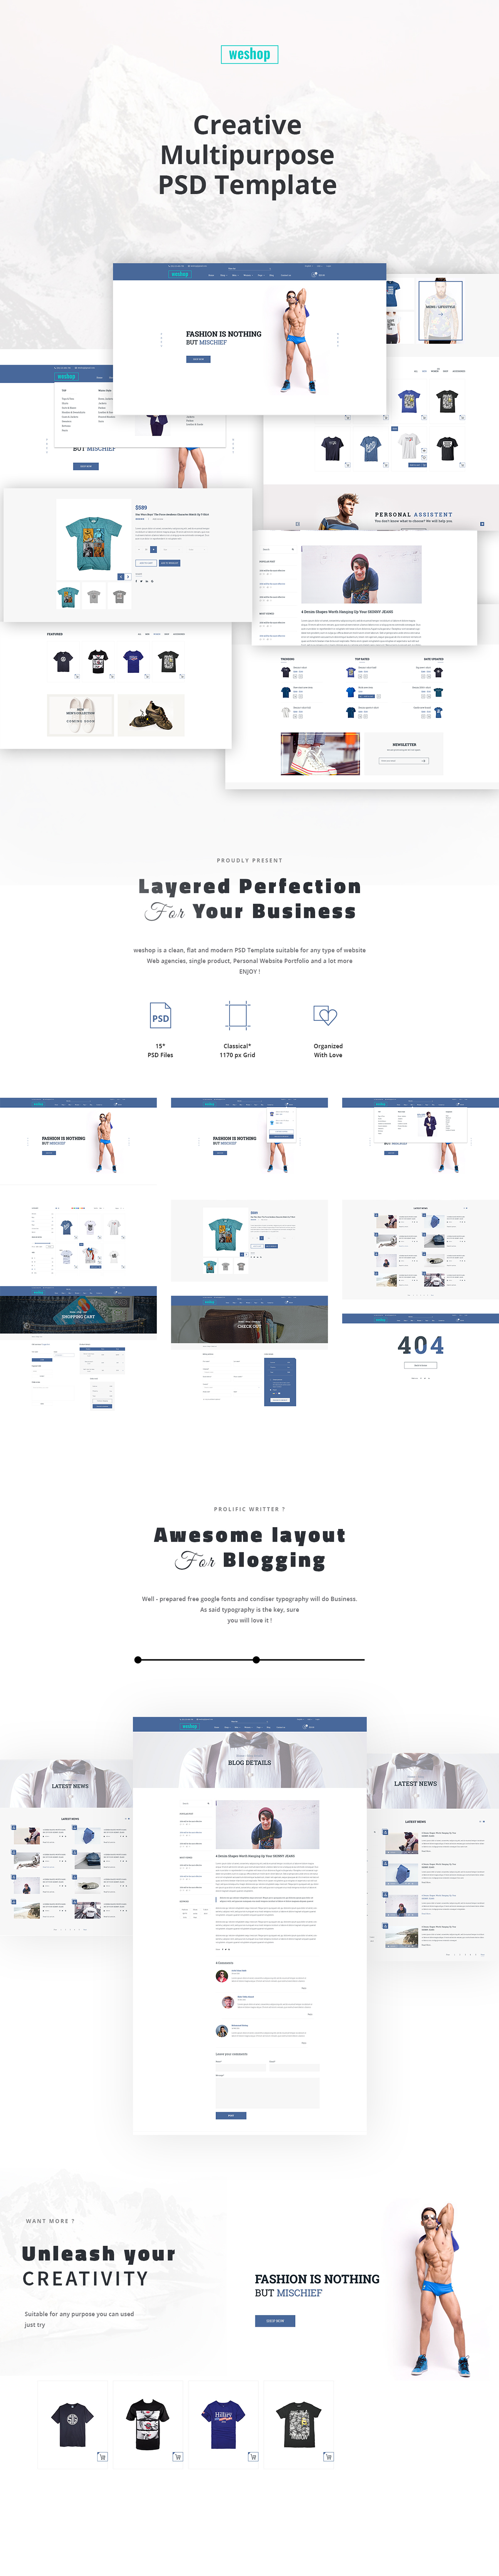 Free Multipurpose e-Commerce PSD Template